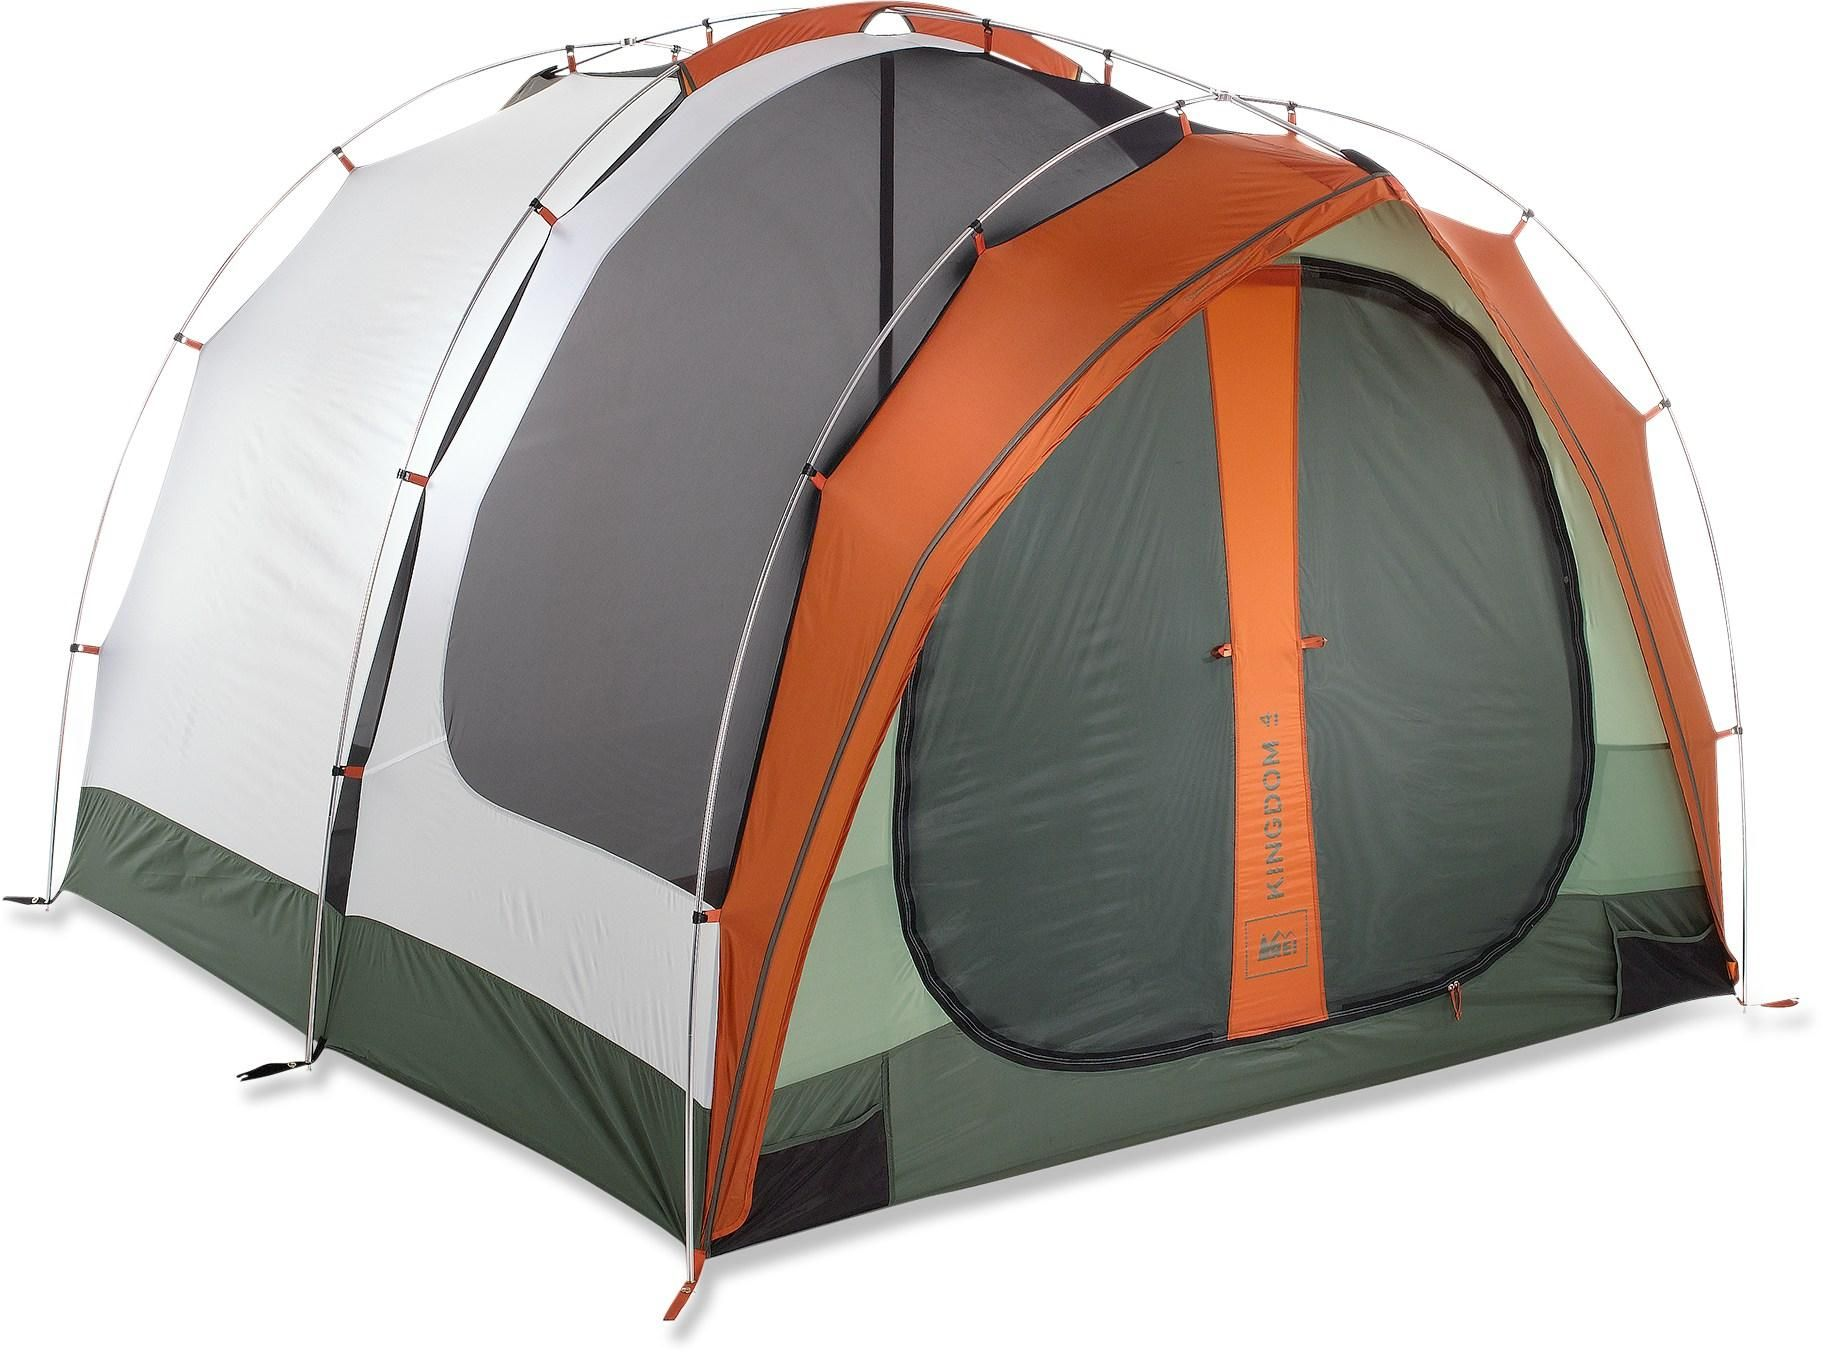 The REI Kingdom 4 tent is a c&ground palace for families or couples. It has  sc 1 st  Pinterest & The REI Kingdom 4 tent is a campground palace for families or ...